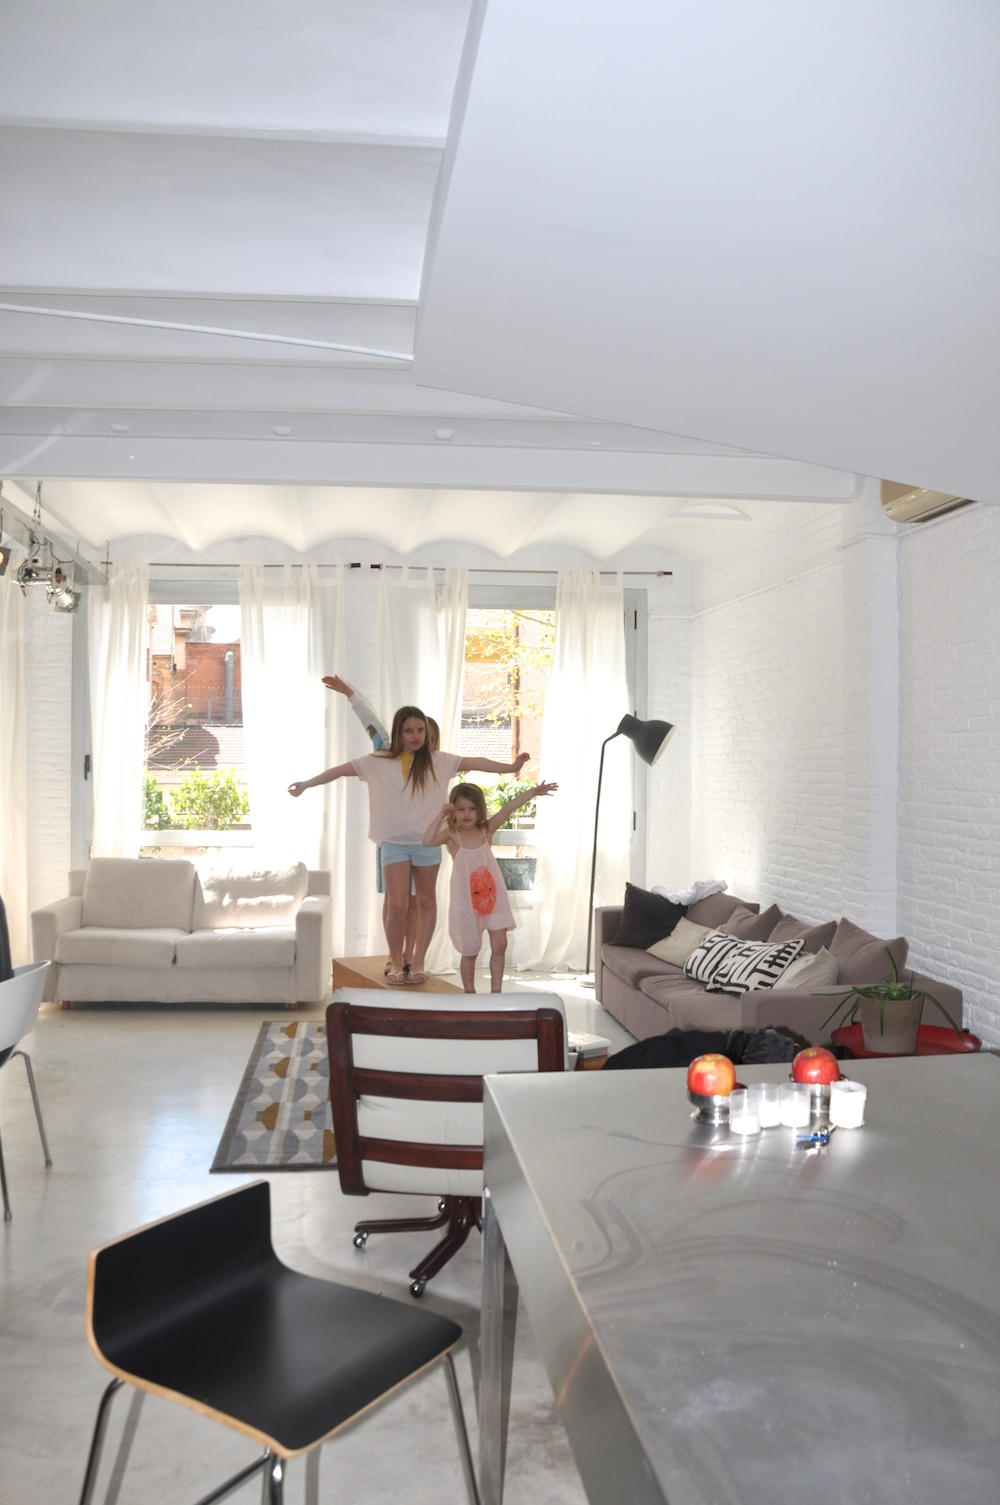 Barcelona_apartment_airbnb_lounge